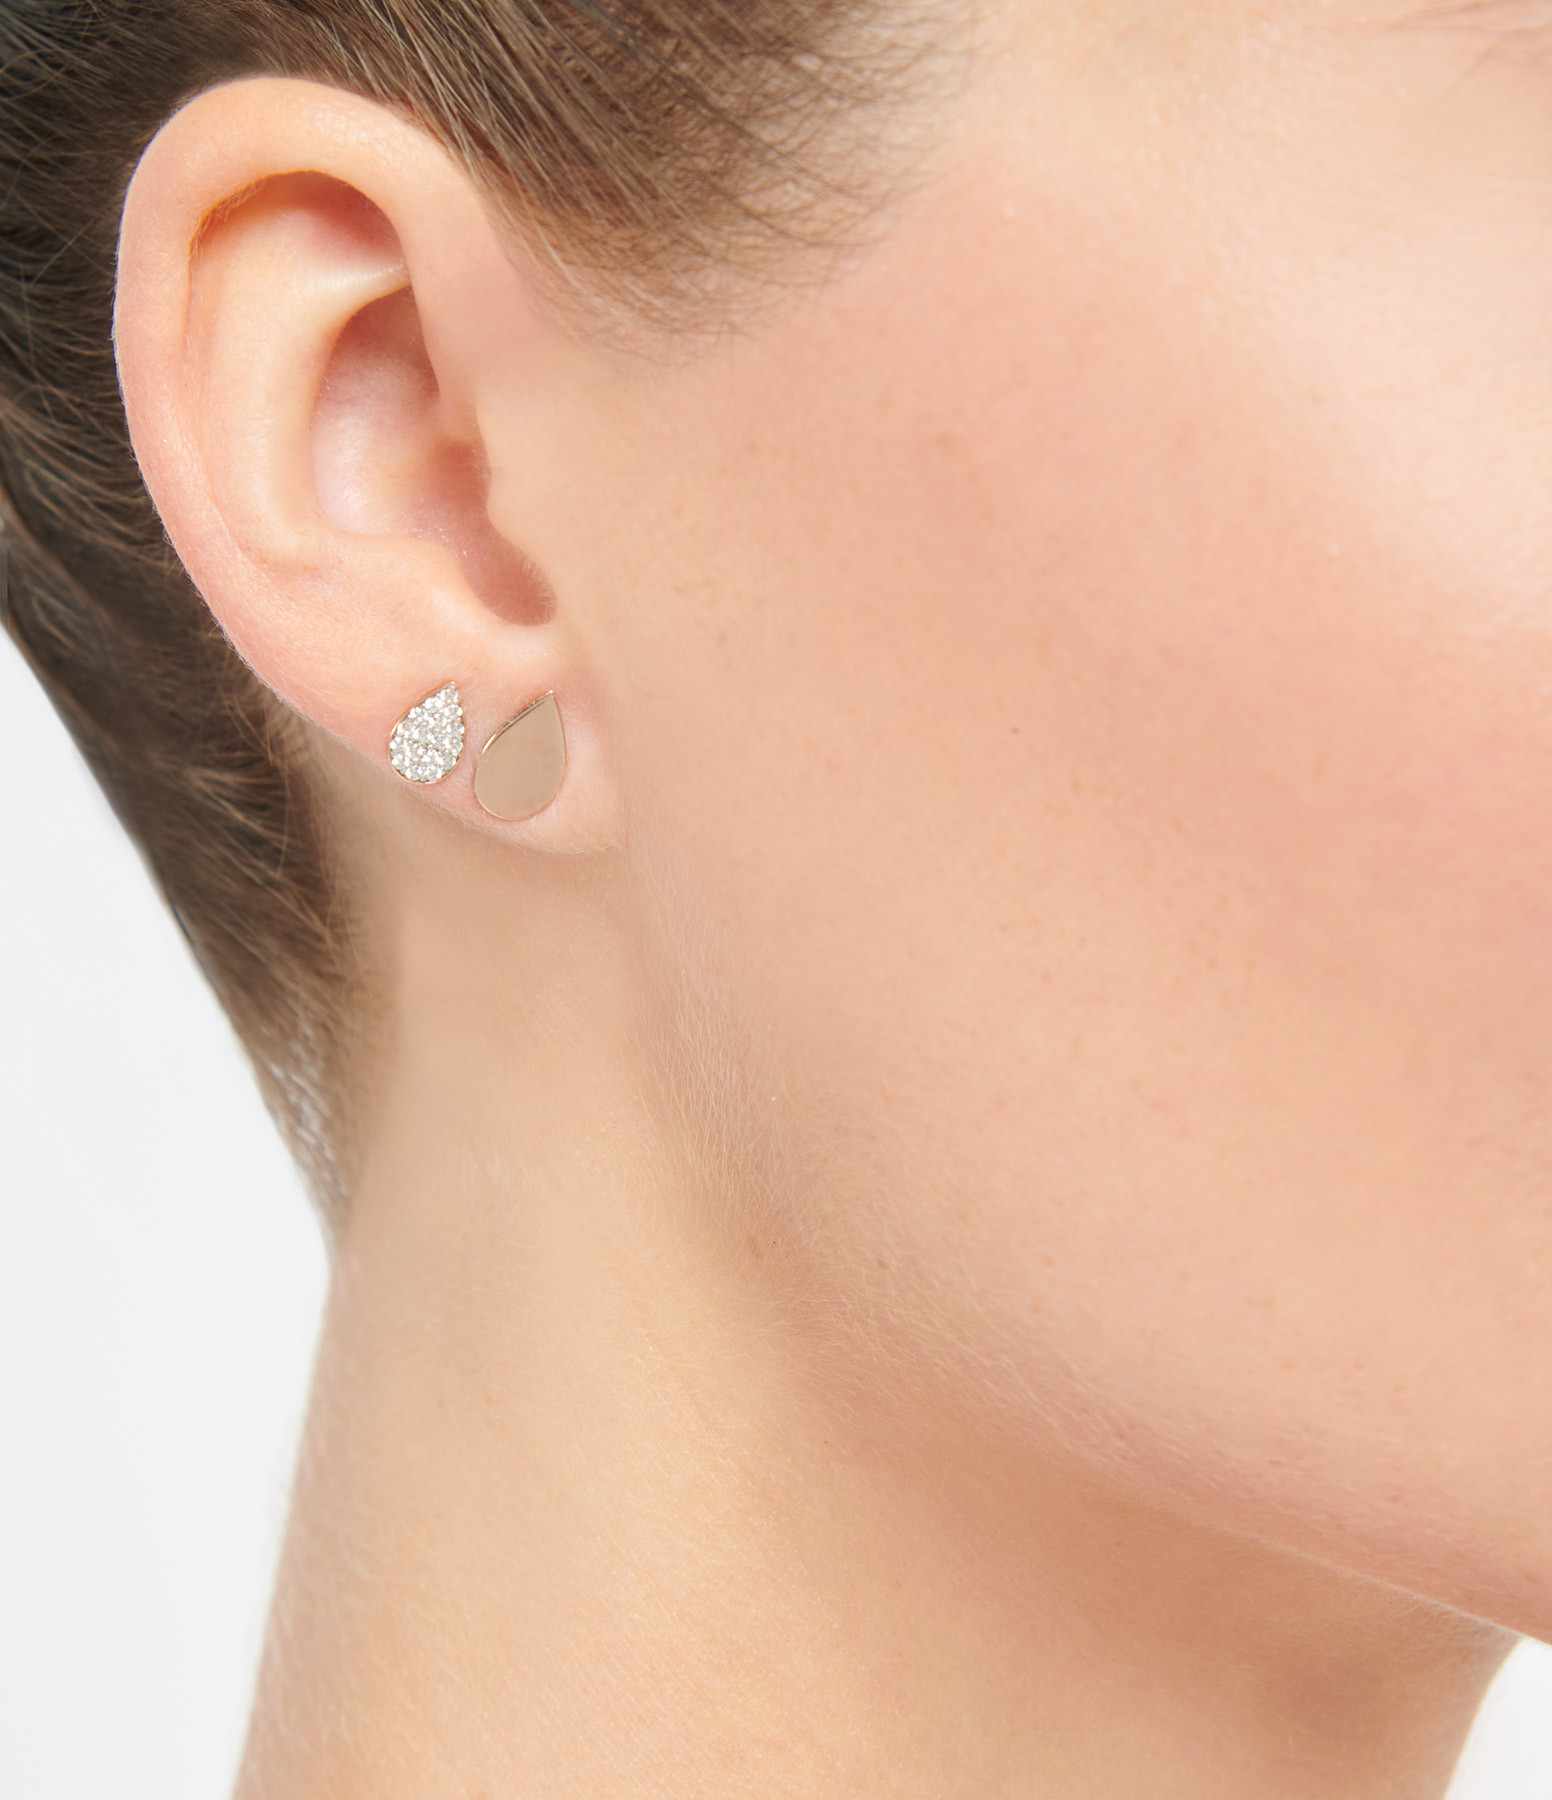 GINETTE NY - Boucles d'oreilles Bliss Puces Diamants Or Rose